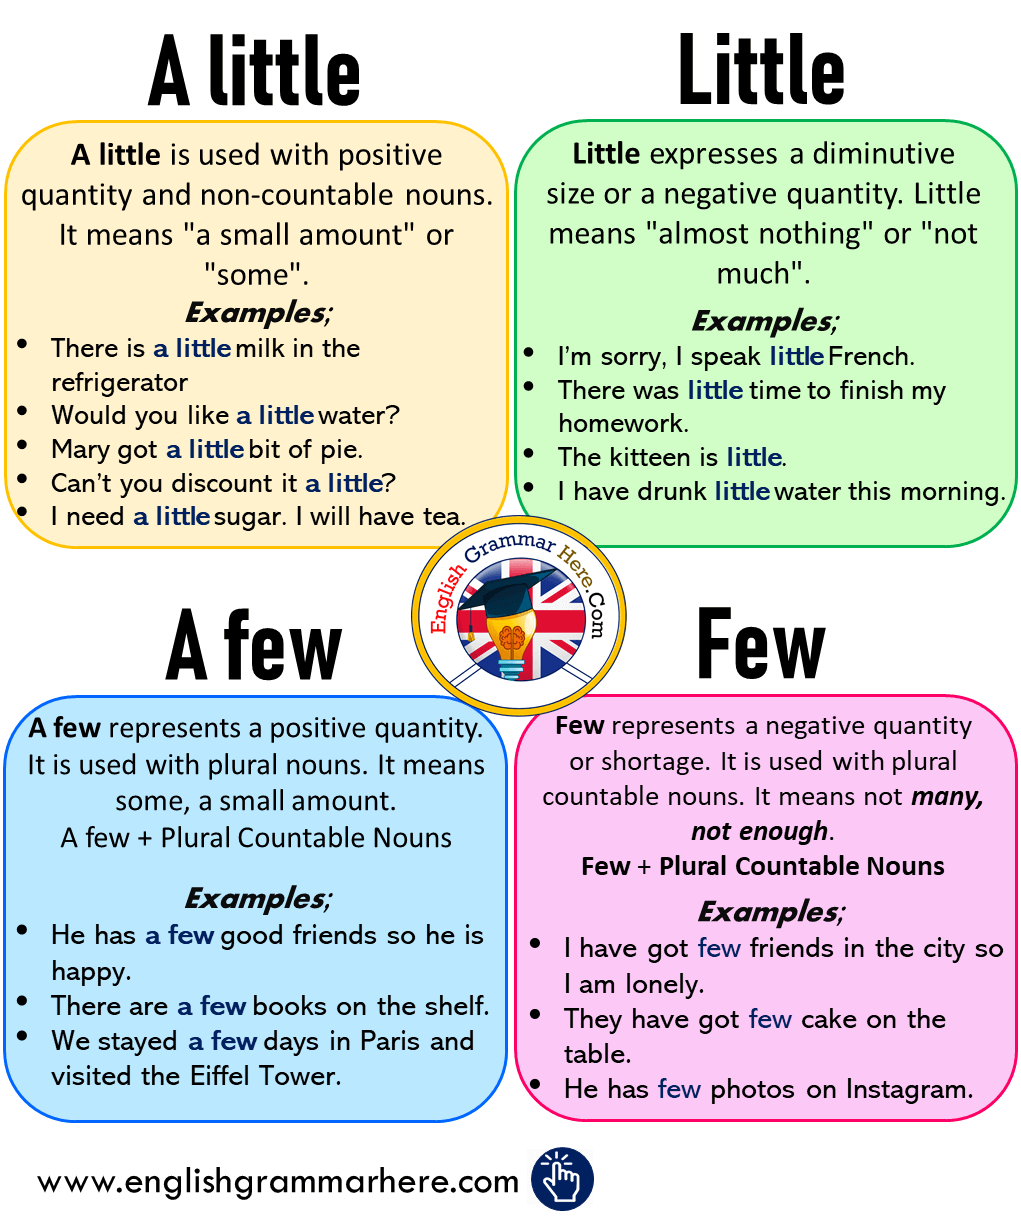 Using A little - Little - A few - Few and Example Sentences